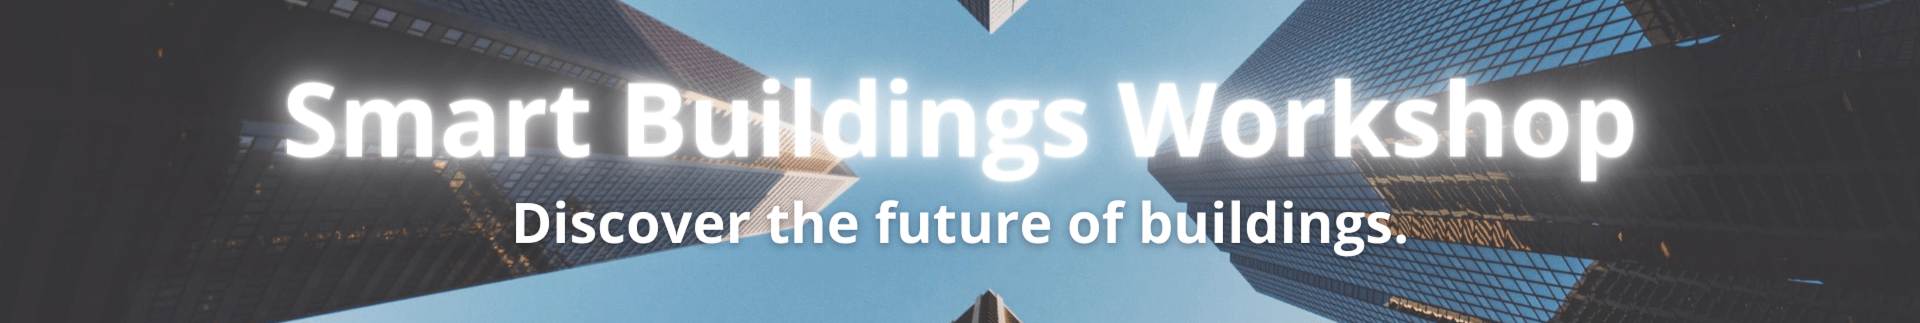 Smart Buildings. Discover the future of buildings.